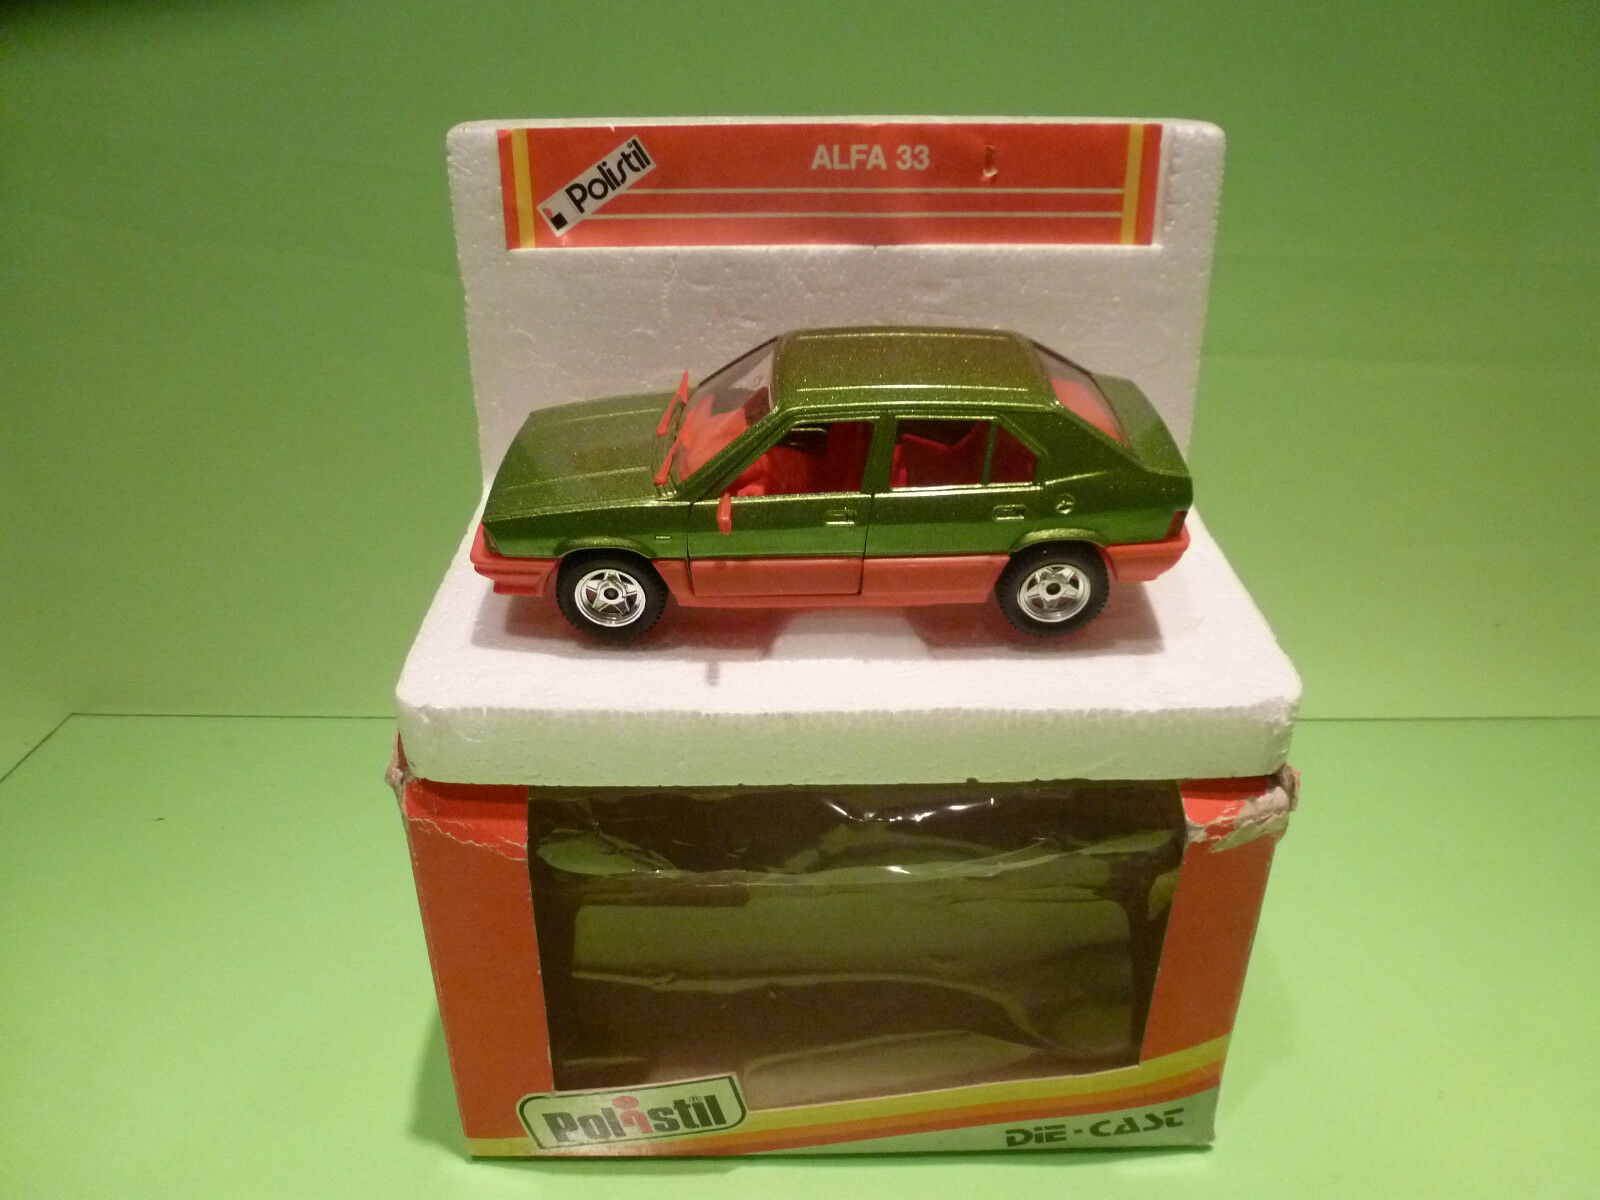 POLISTIL 2207 ALFA ROMEO ALFA 33 - 1 25 - RARE SELTEN - NEAR MINT IN BOX